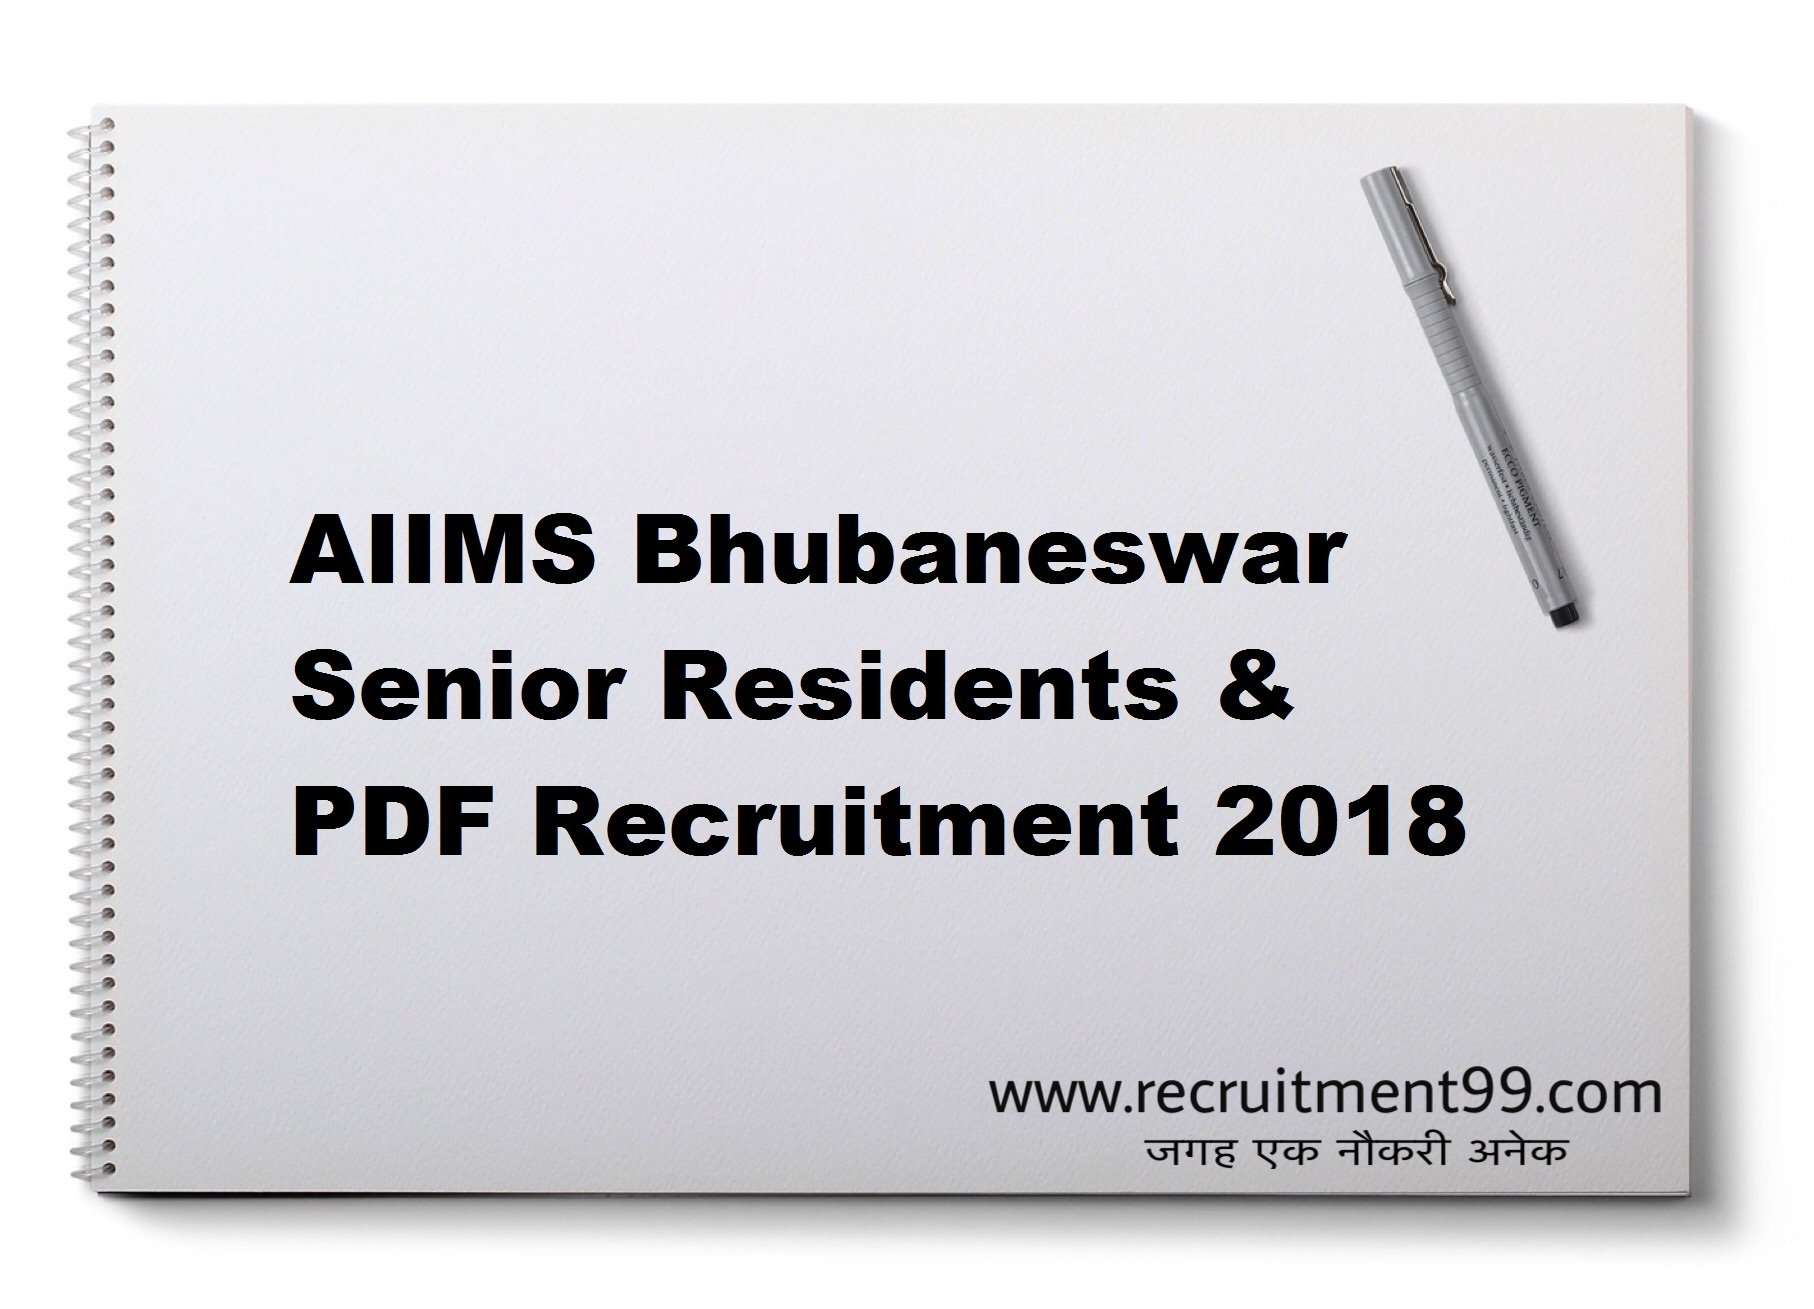 AIIMS Bhubaneswar Senior Residents & PDF Recruitment Admit Card & Result 2018